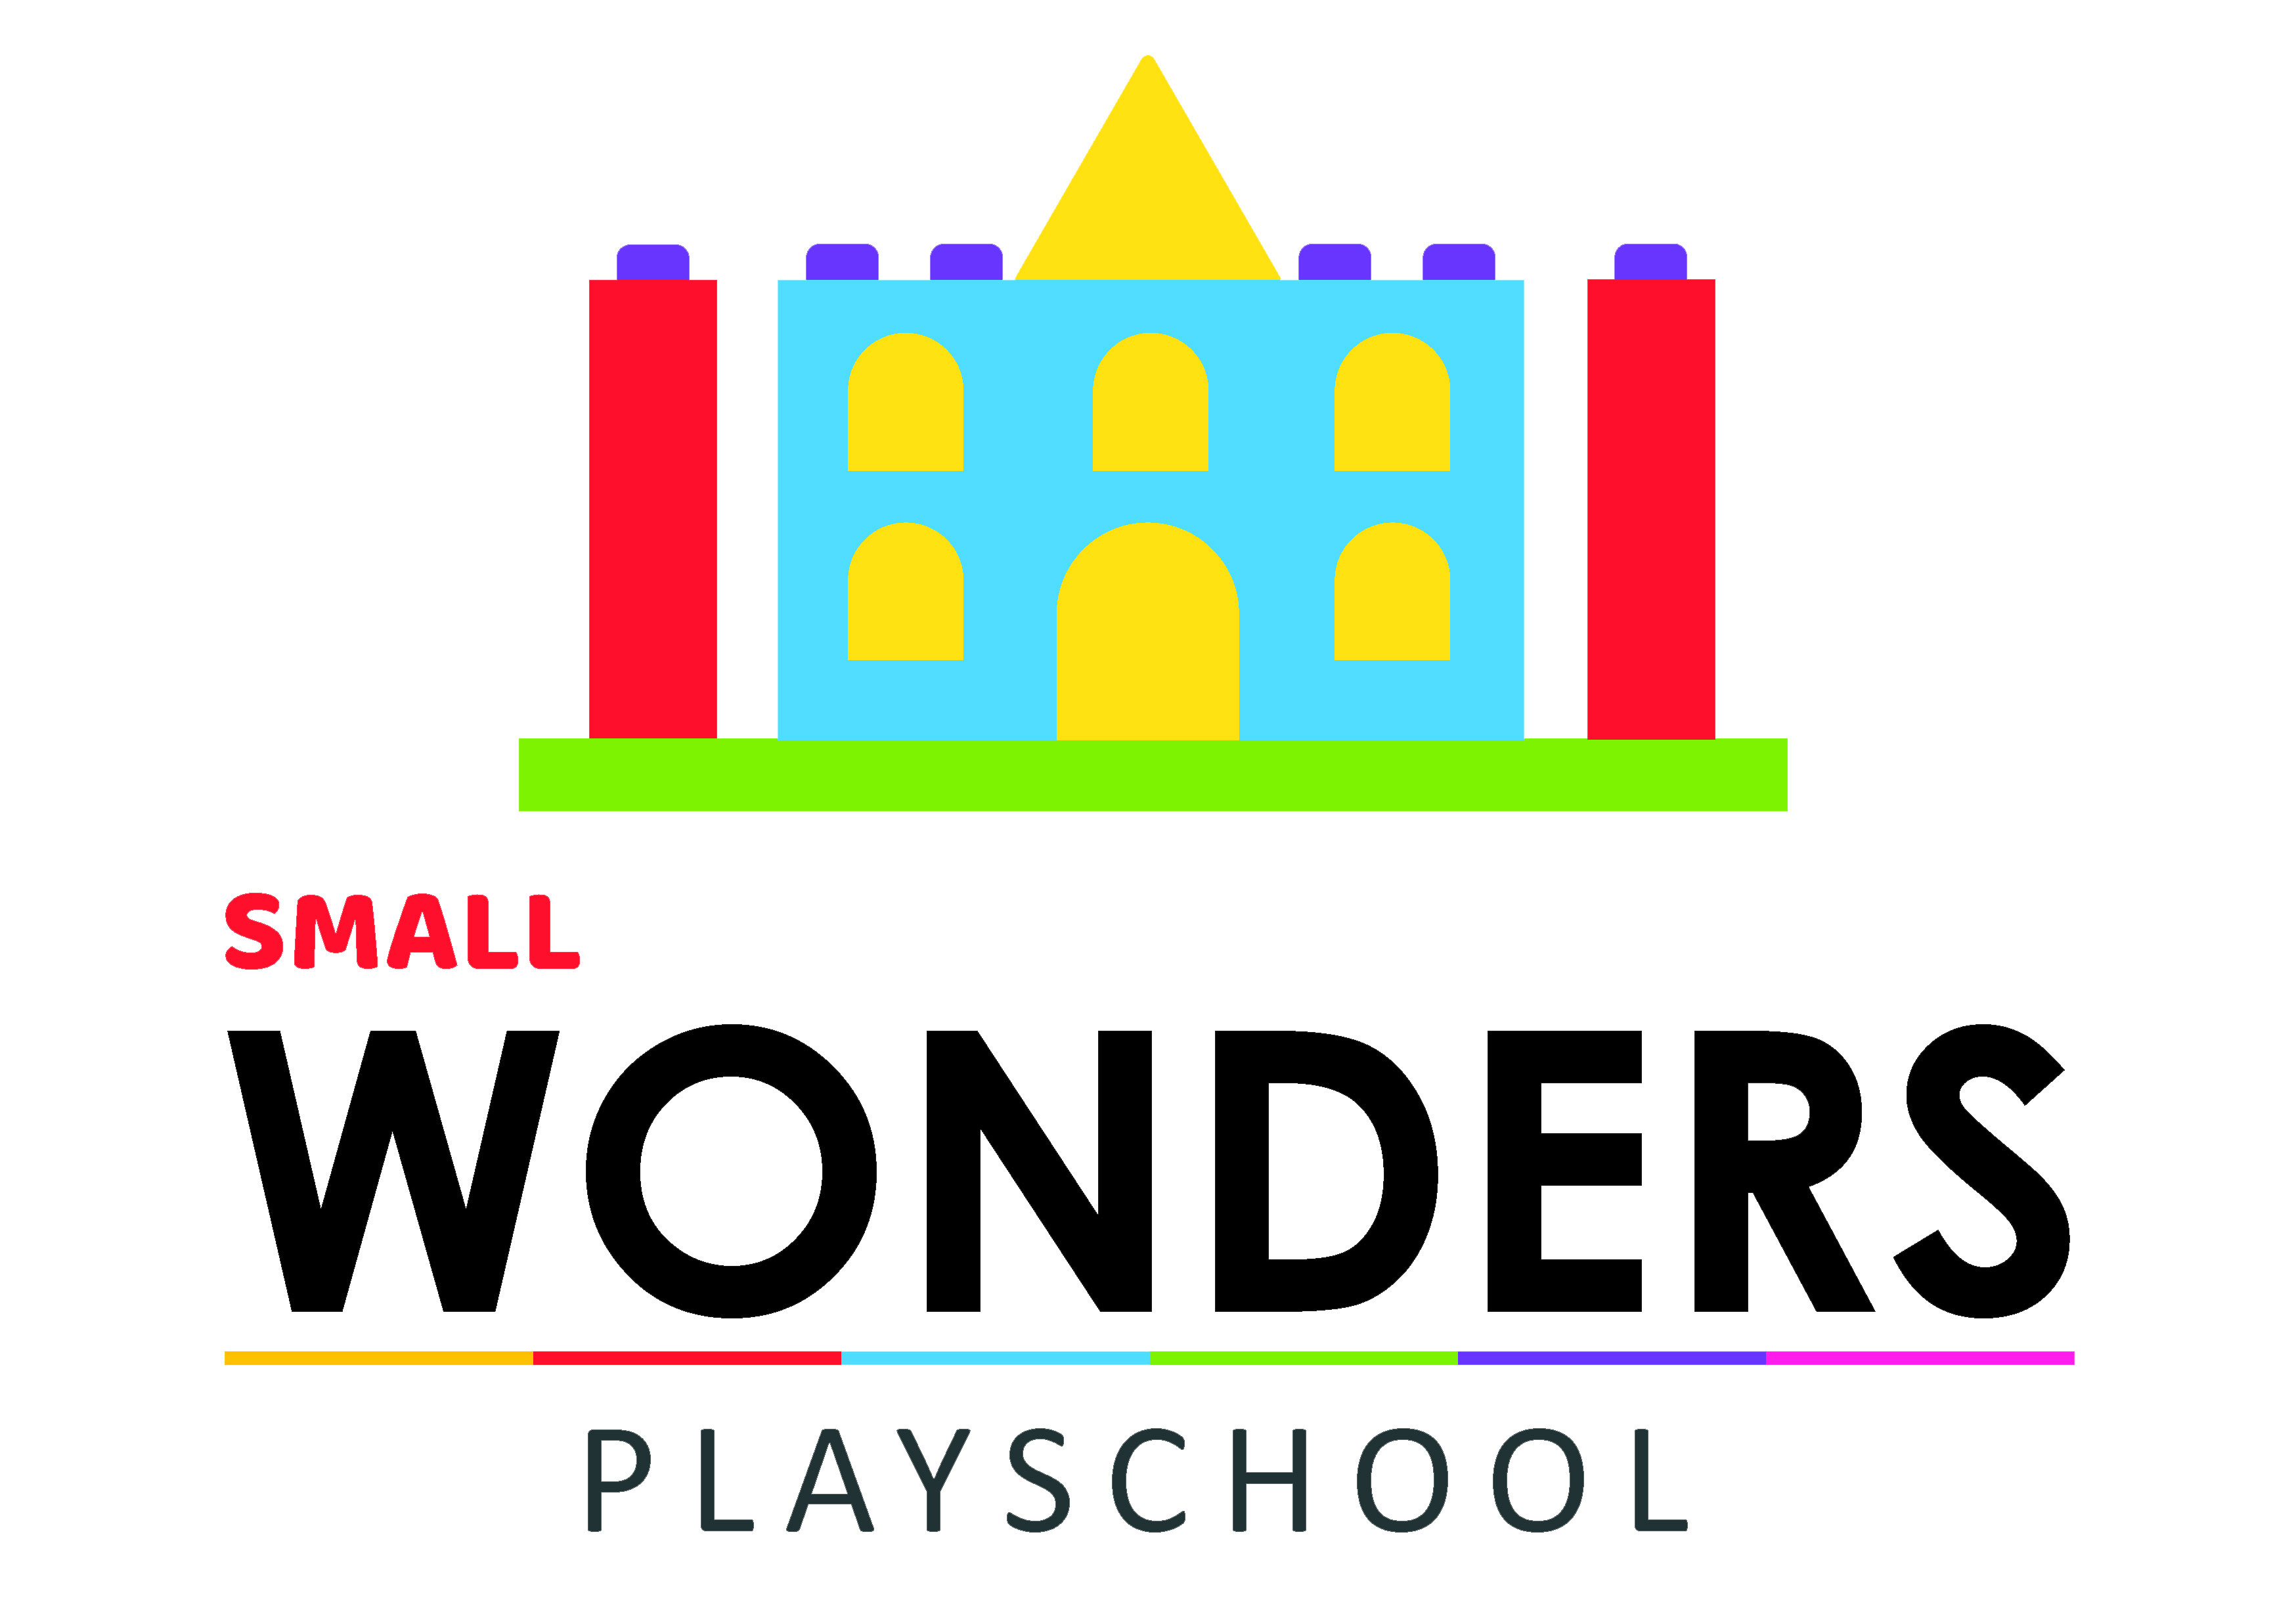 small wonders play school logo smallwondersplayschool rh smallwondersplayschool com play school room play school coloring